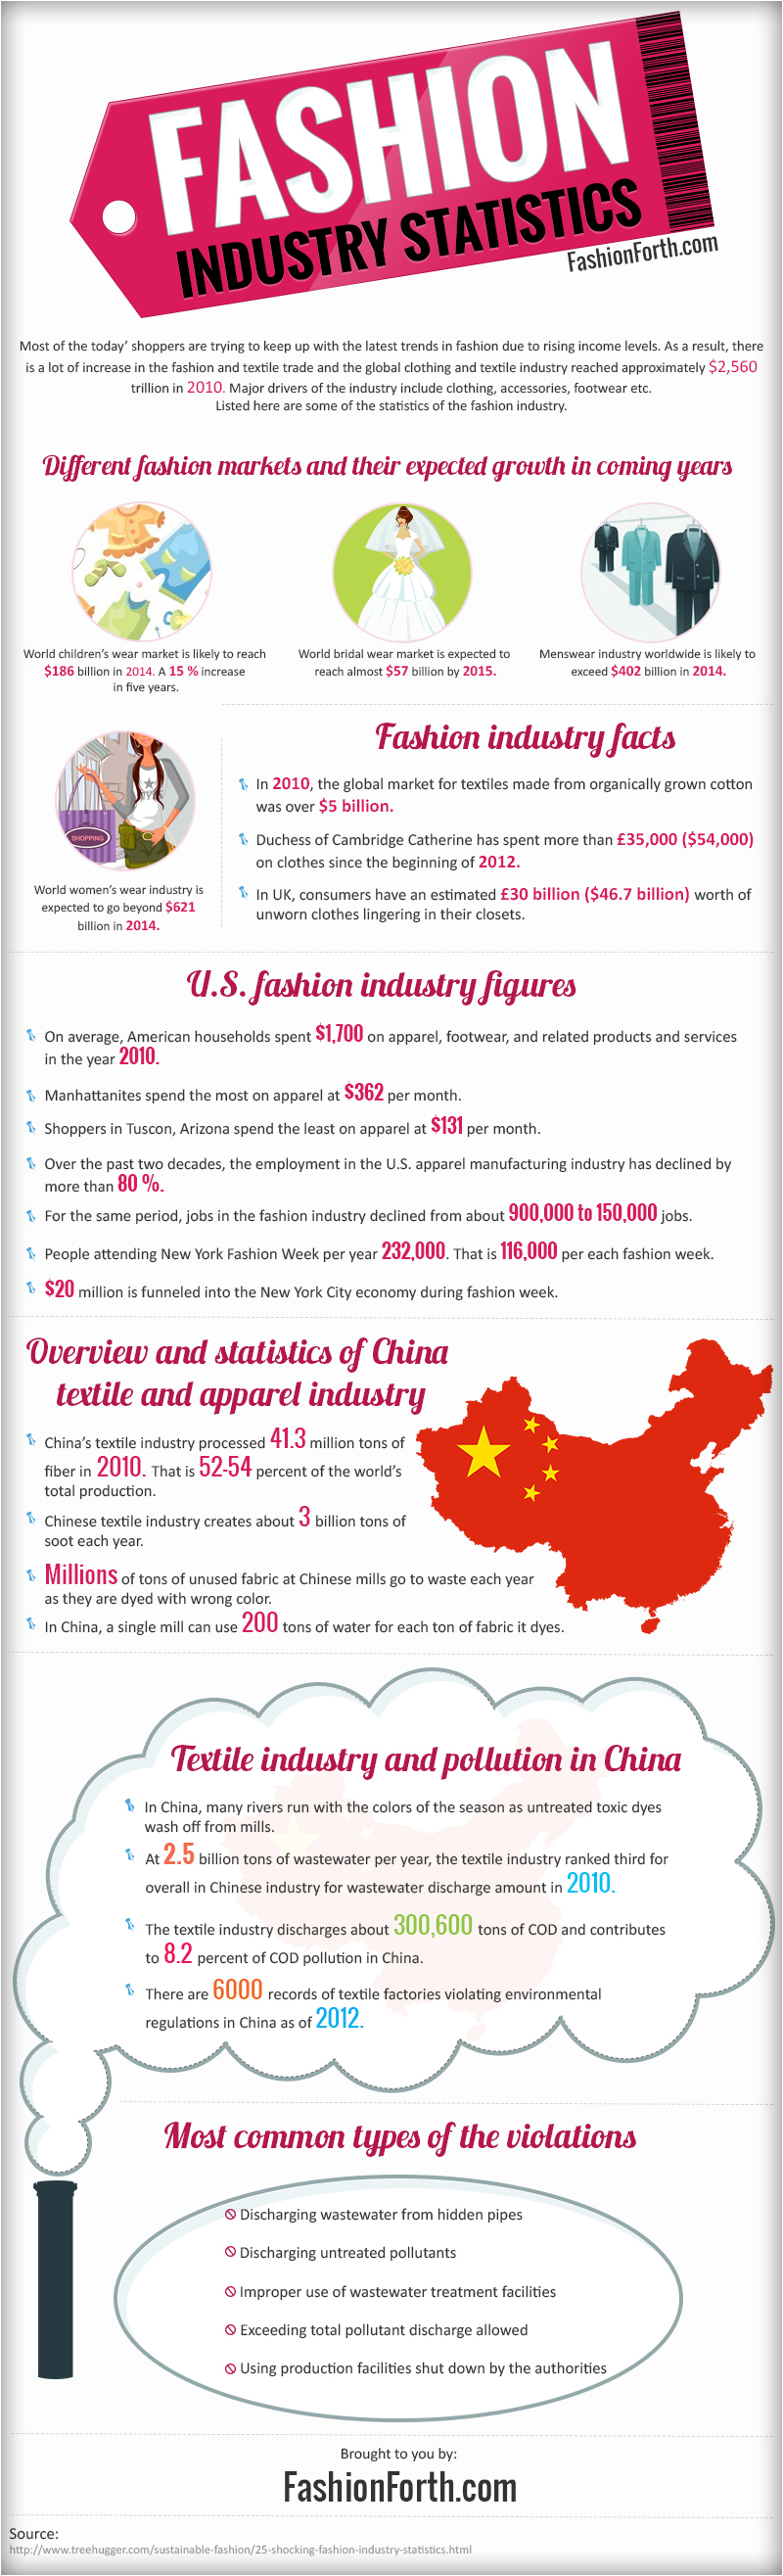 Fashion Industry Facts